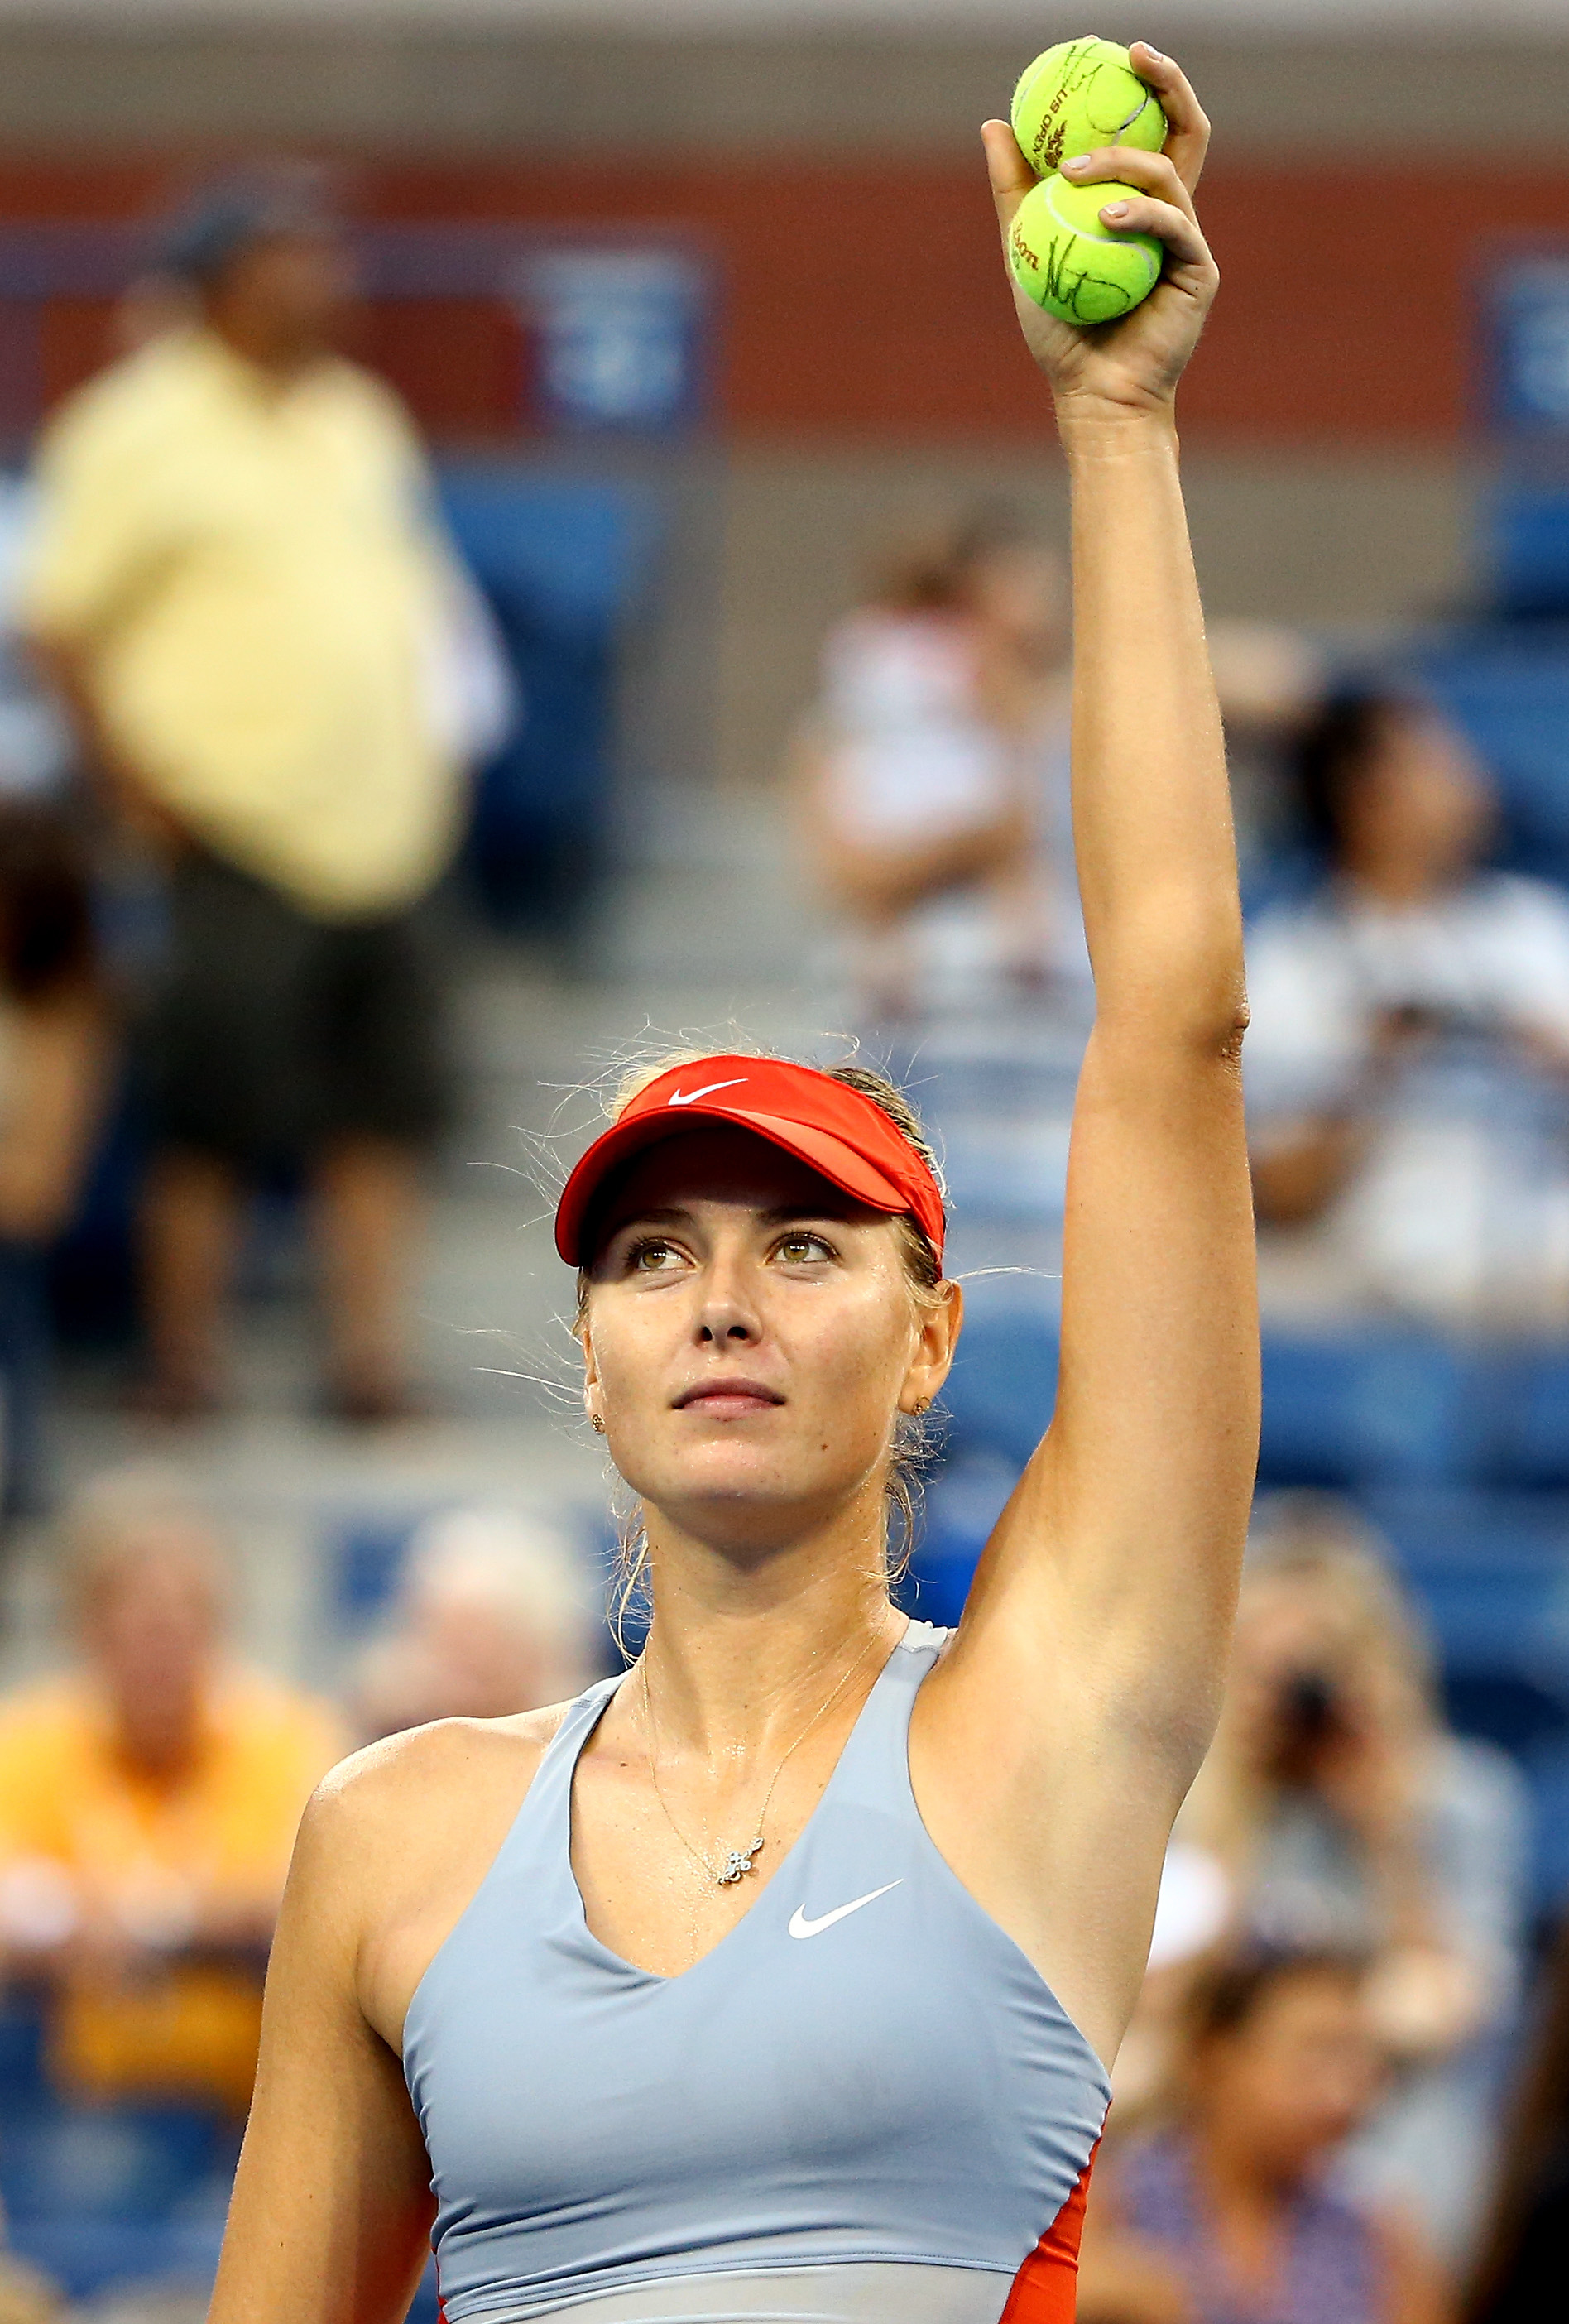 <b>Maria Sharapova</b> Anna Kournikova — the glamorous Muscovite who reached the semifinals at Wimbledon in 1997 — showed Russian tennis players what was possible. But it was Maria Sharapova who confirmed that they could have it all — if they worked really, really hard. She won Wimbledon at 17, went on to take titles at the U.S. Open and Australian Open and earned the No. 1 ranking on four occasions.